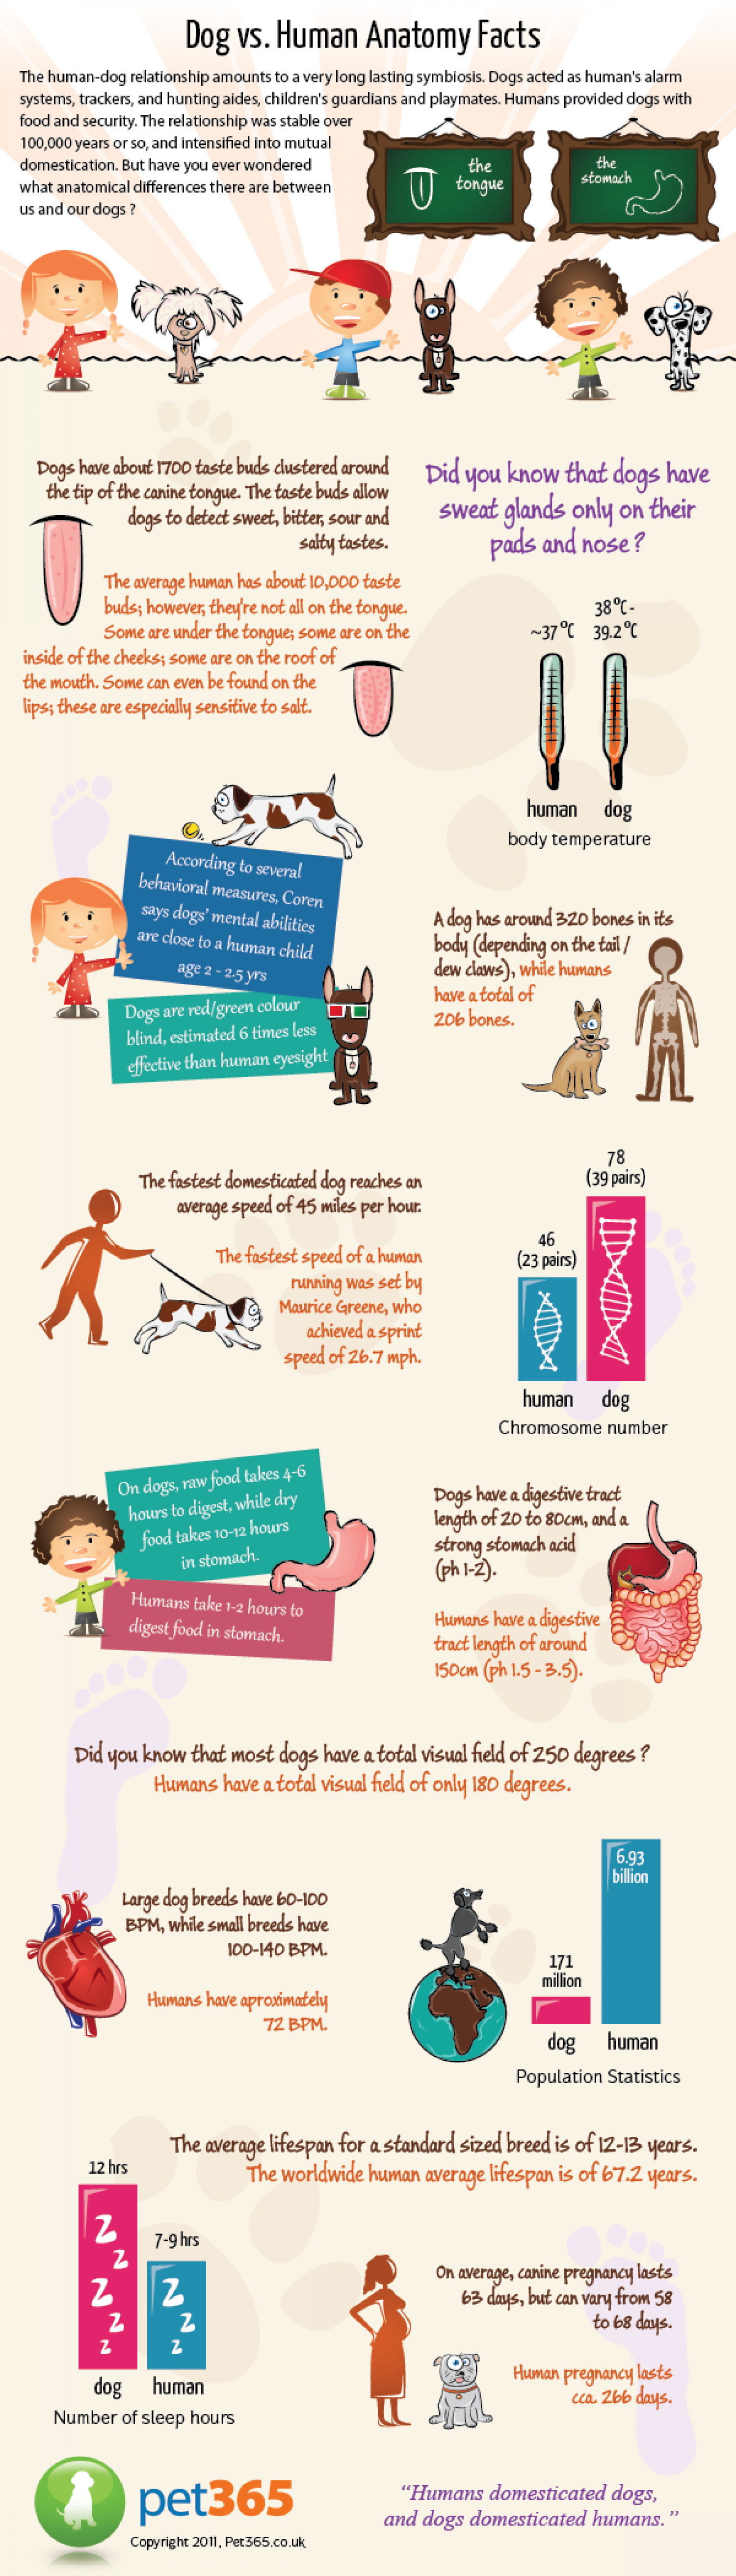 Dog vs Human Anatomy | Visual.ly